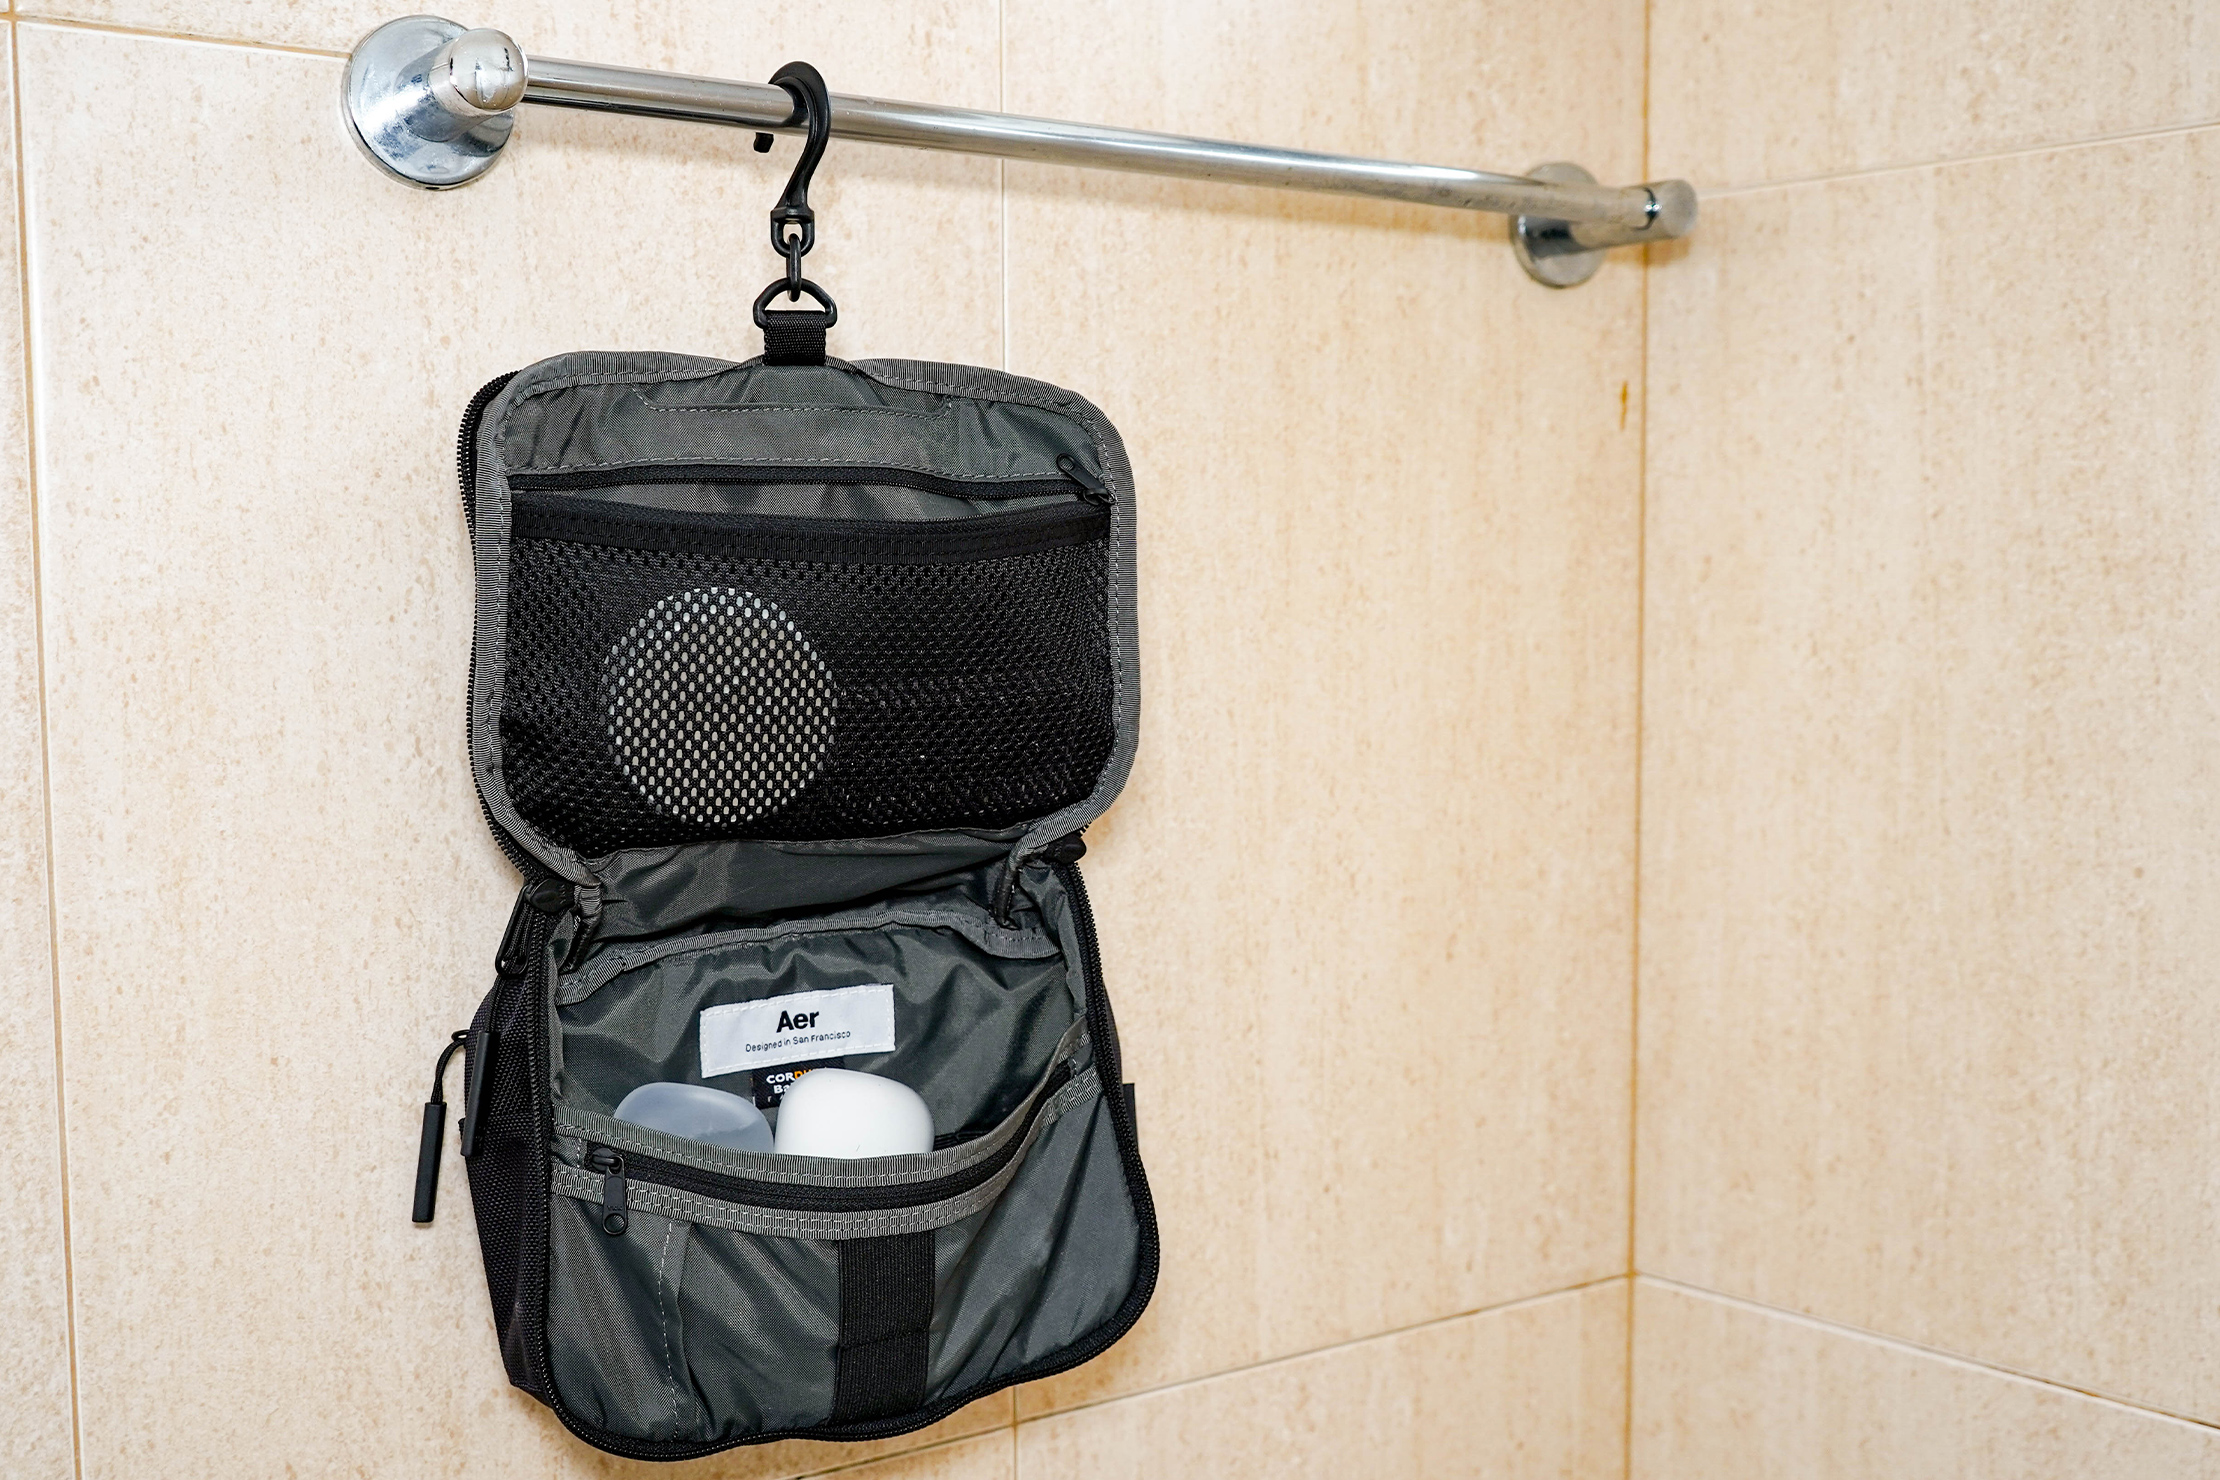 Aer Travel Kit Hanging